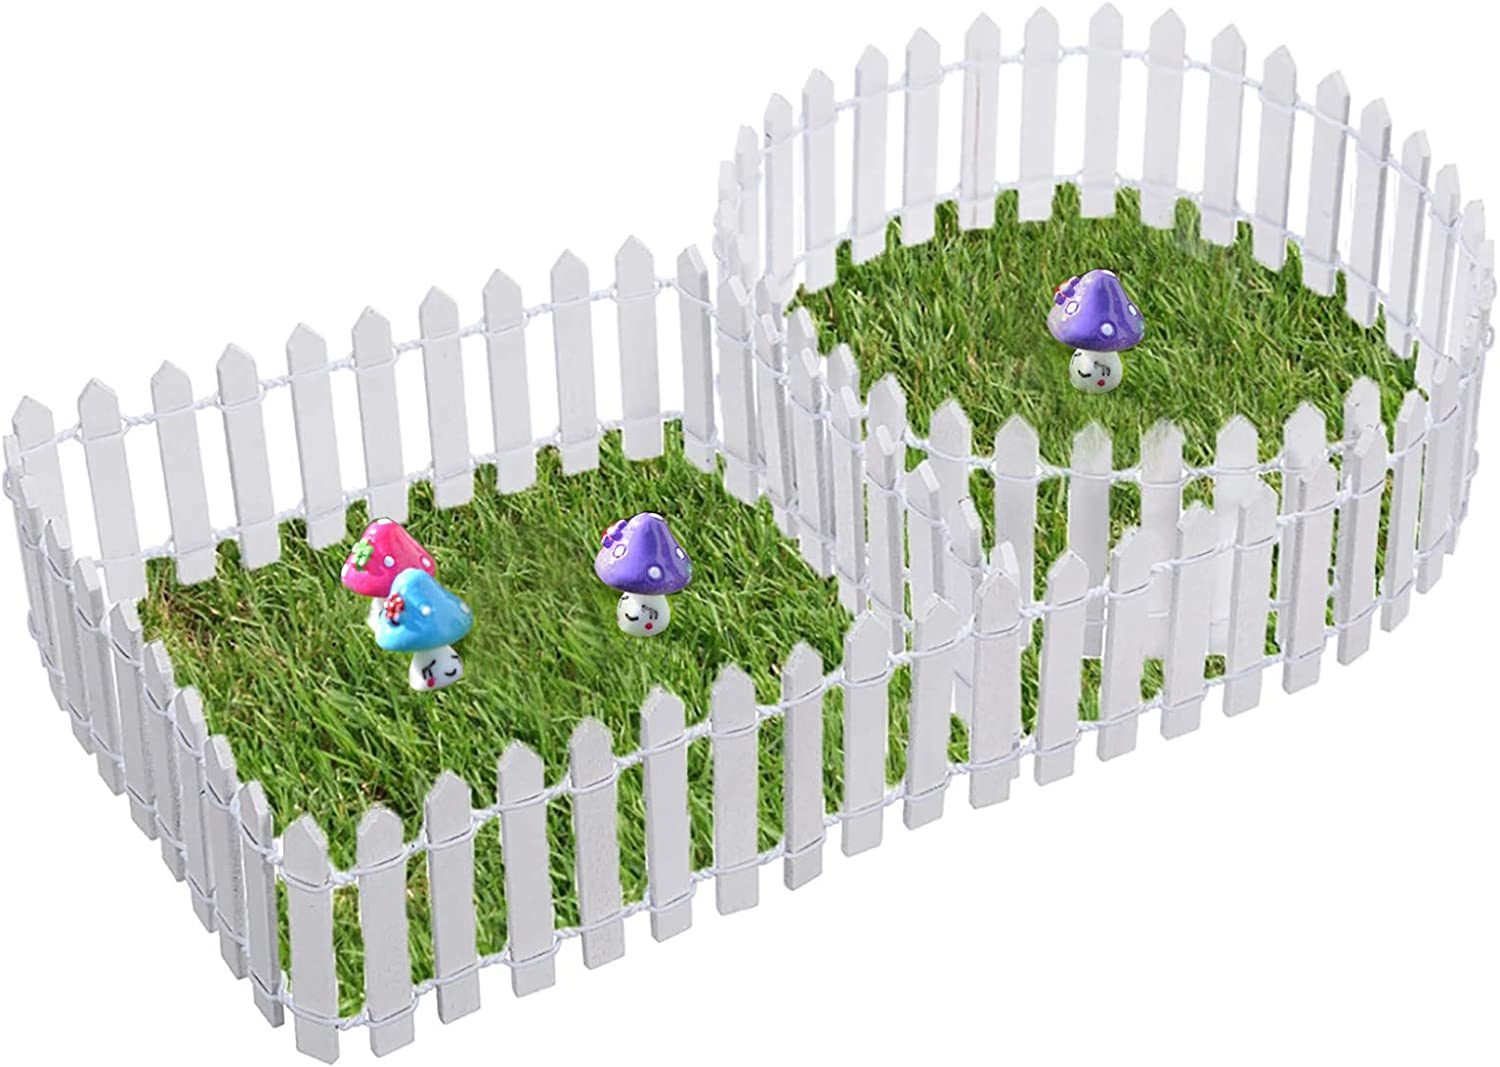 2 Pack OBPSFY 90cm Wood Fence White Miniature Picket Decorative Fences Fairy Garden Home Ornament Micro Landscaping DIY Accessories